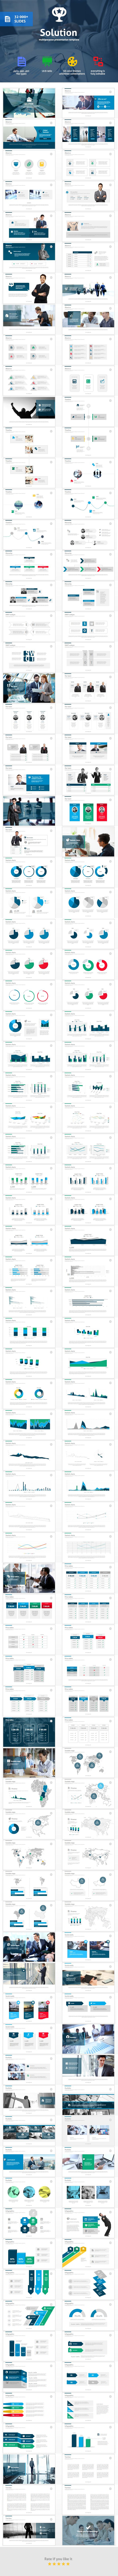 Solution Powerpoint Presentation Template